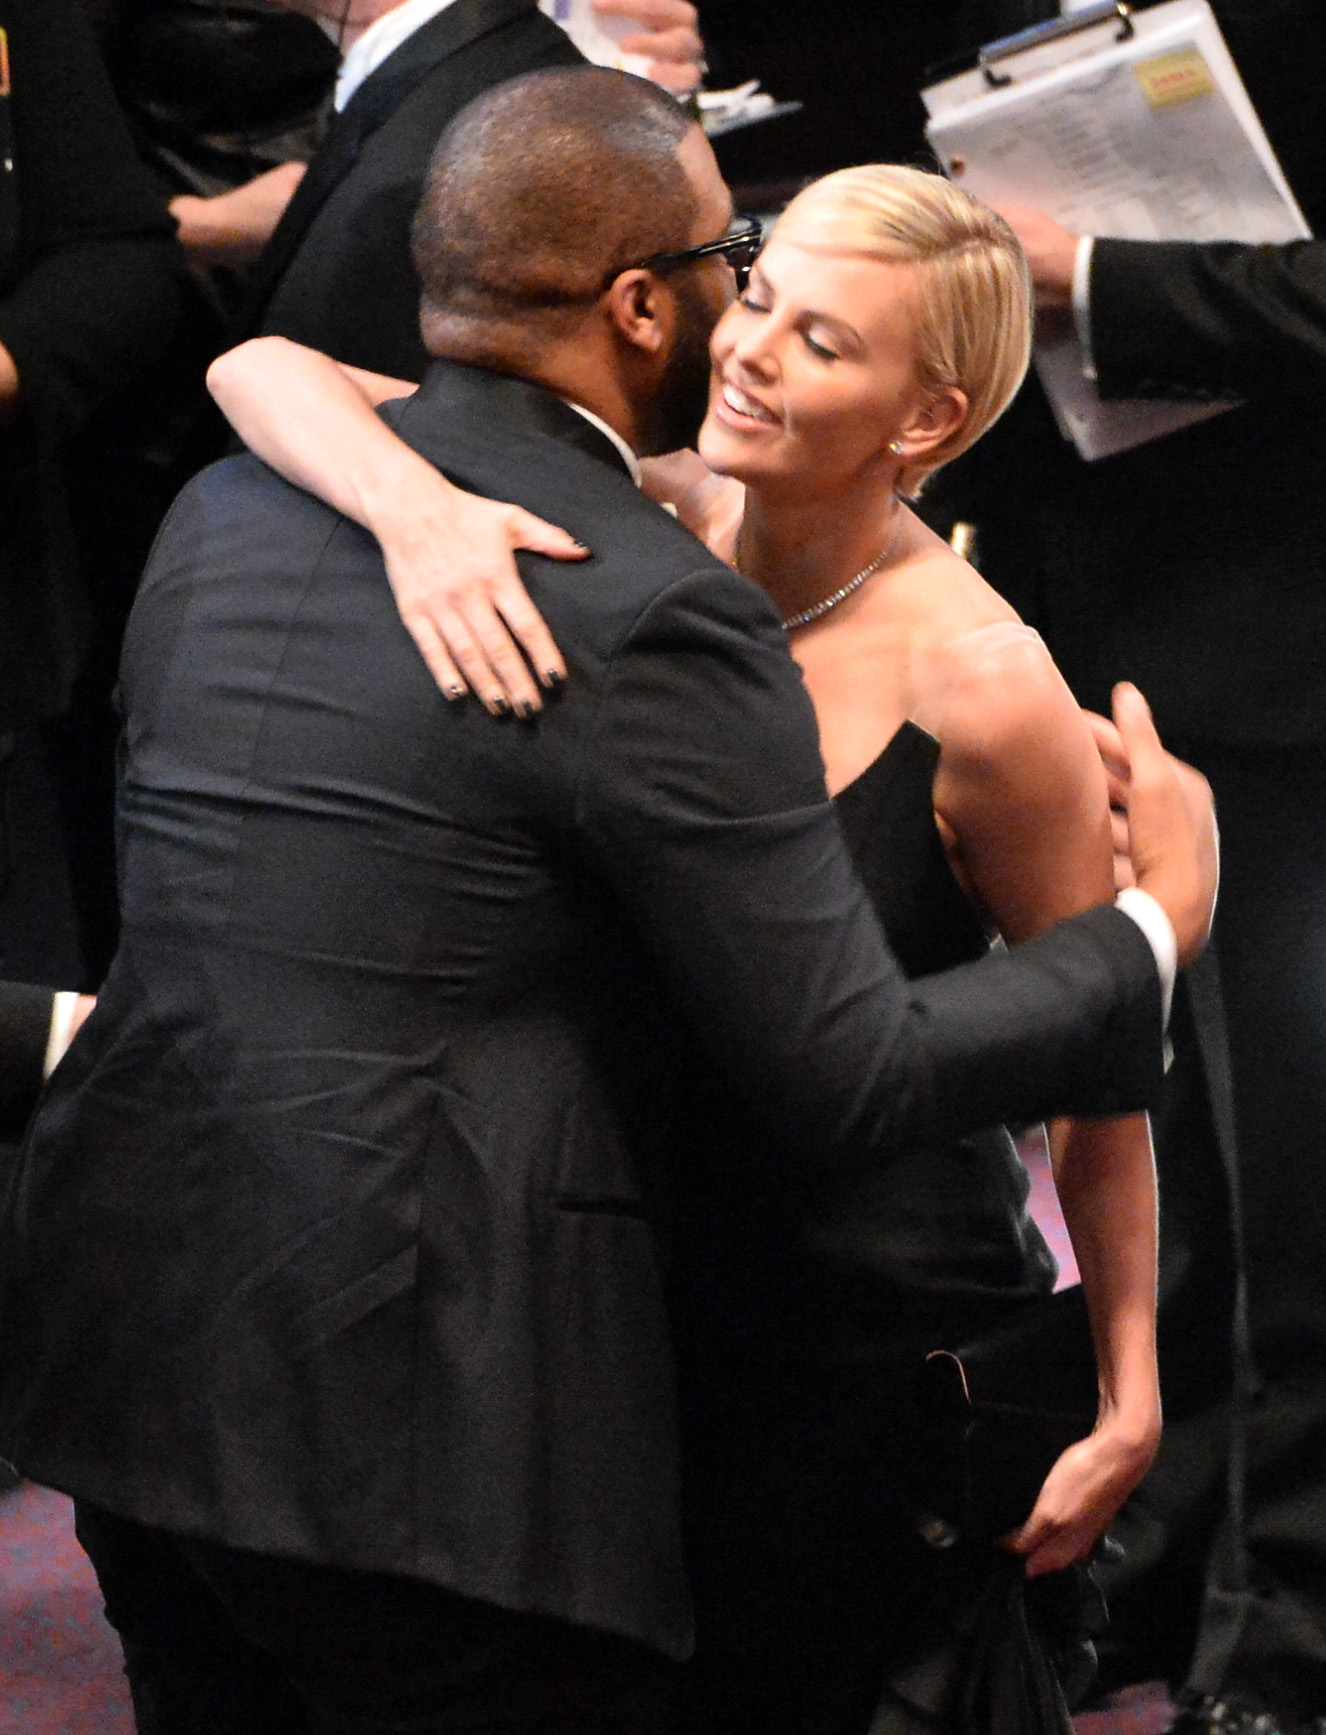 Charlize Theron gave Steve McQueen a big hug.